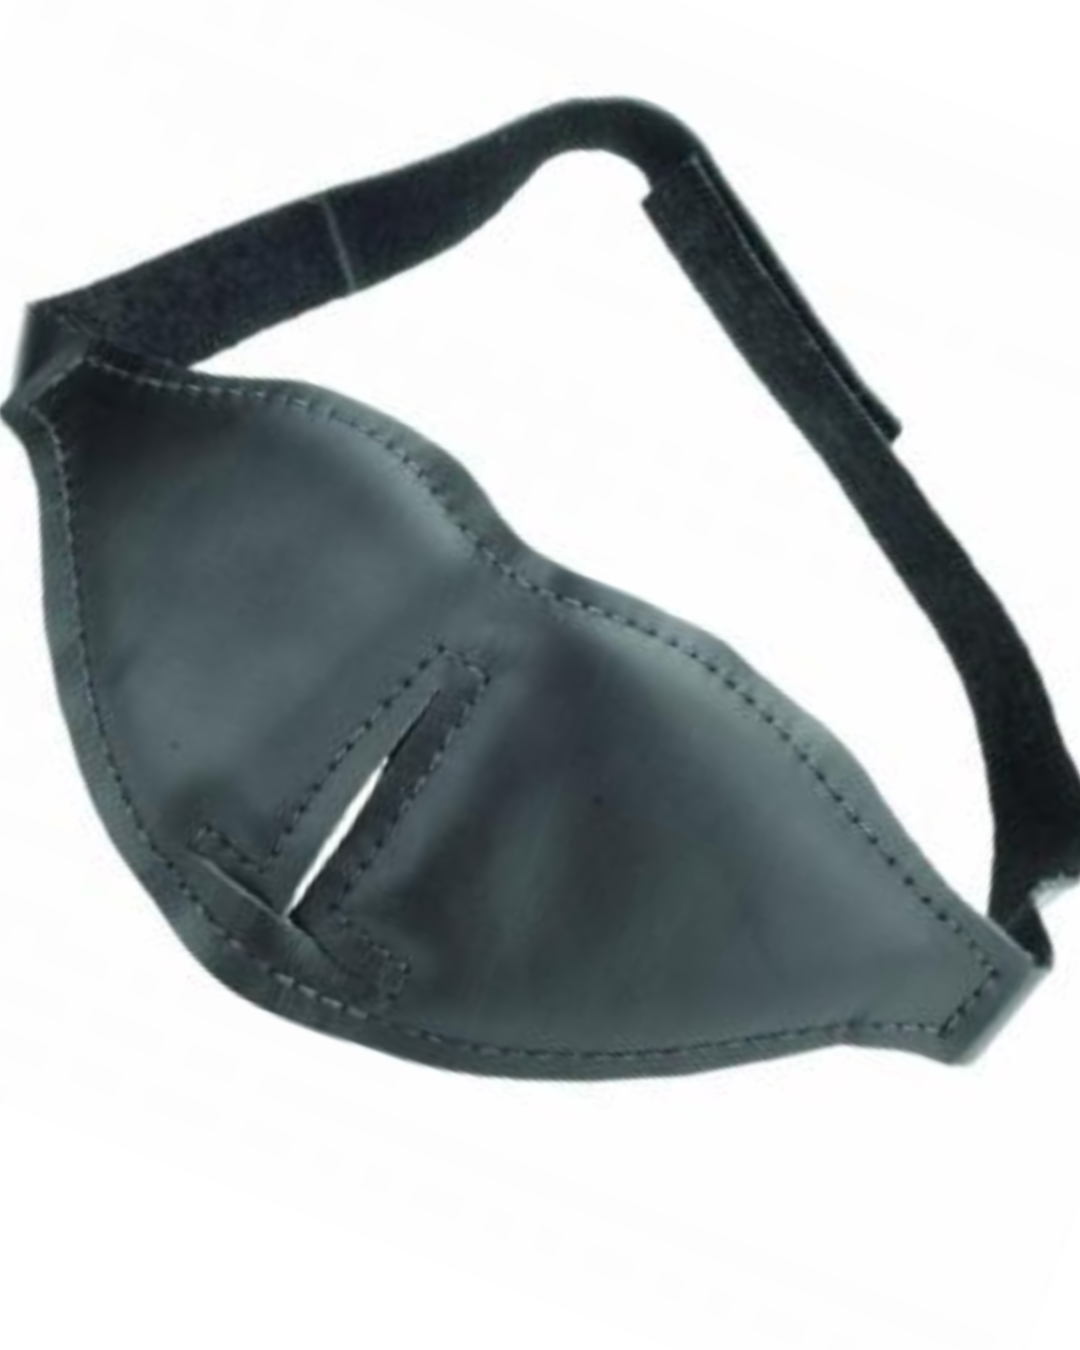 Blackout Blindfold With Fabric Lining Black